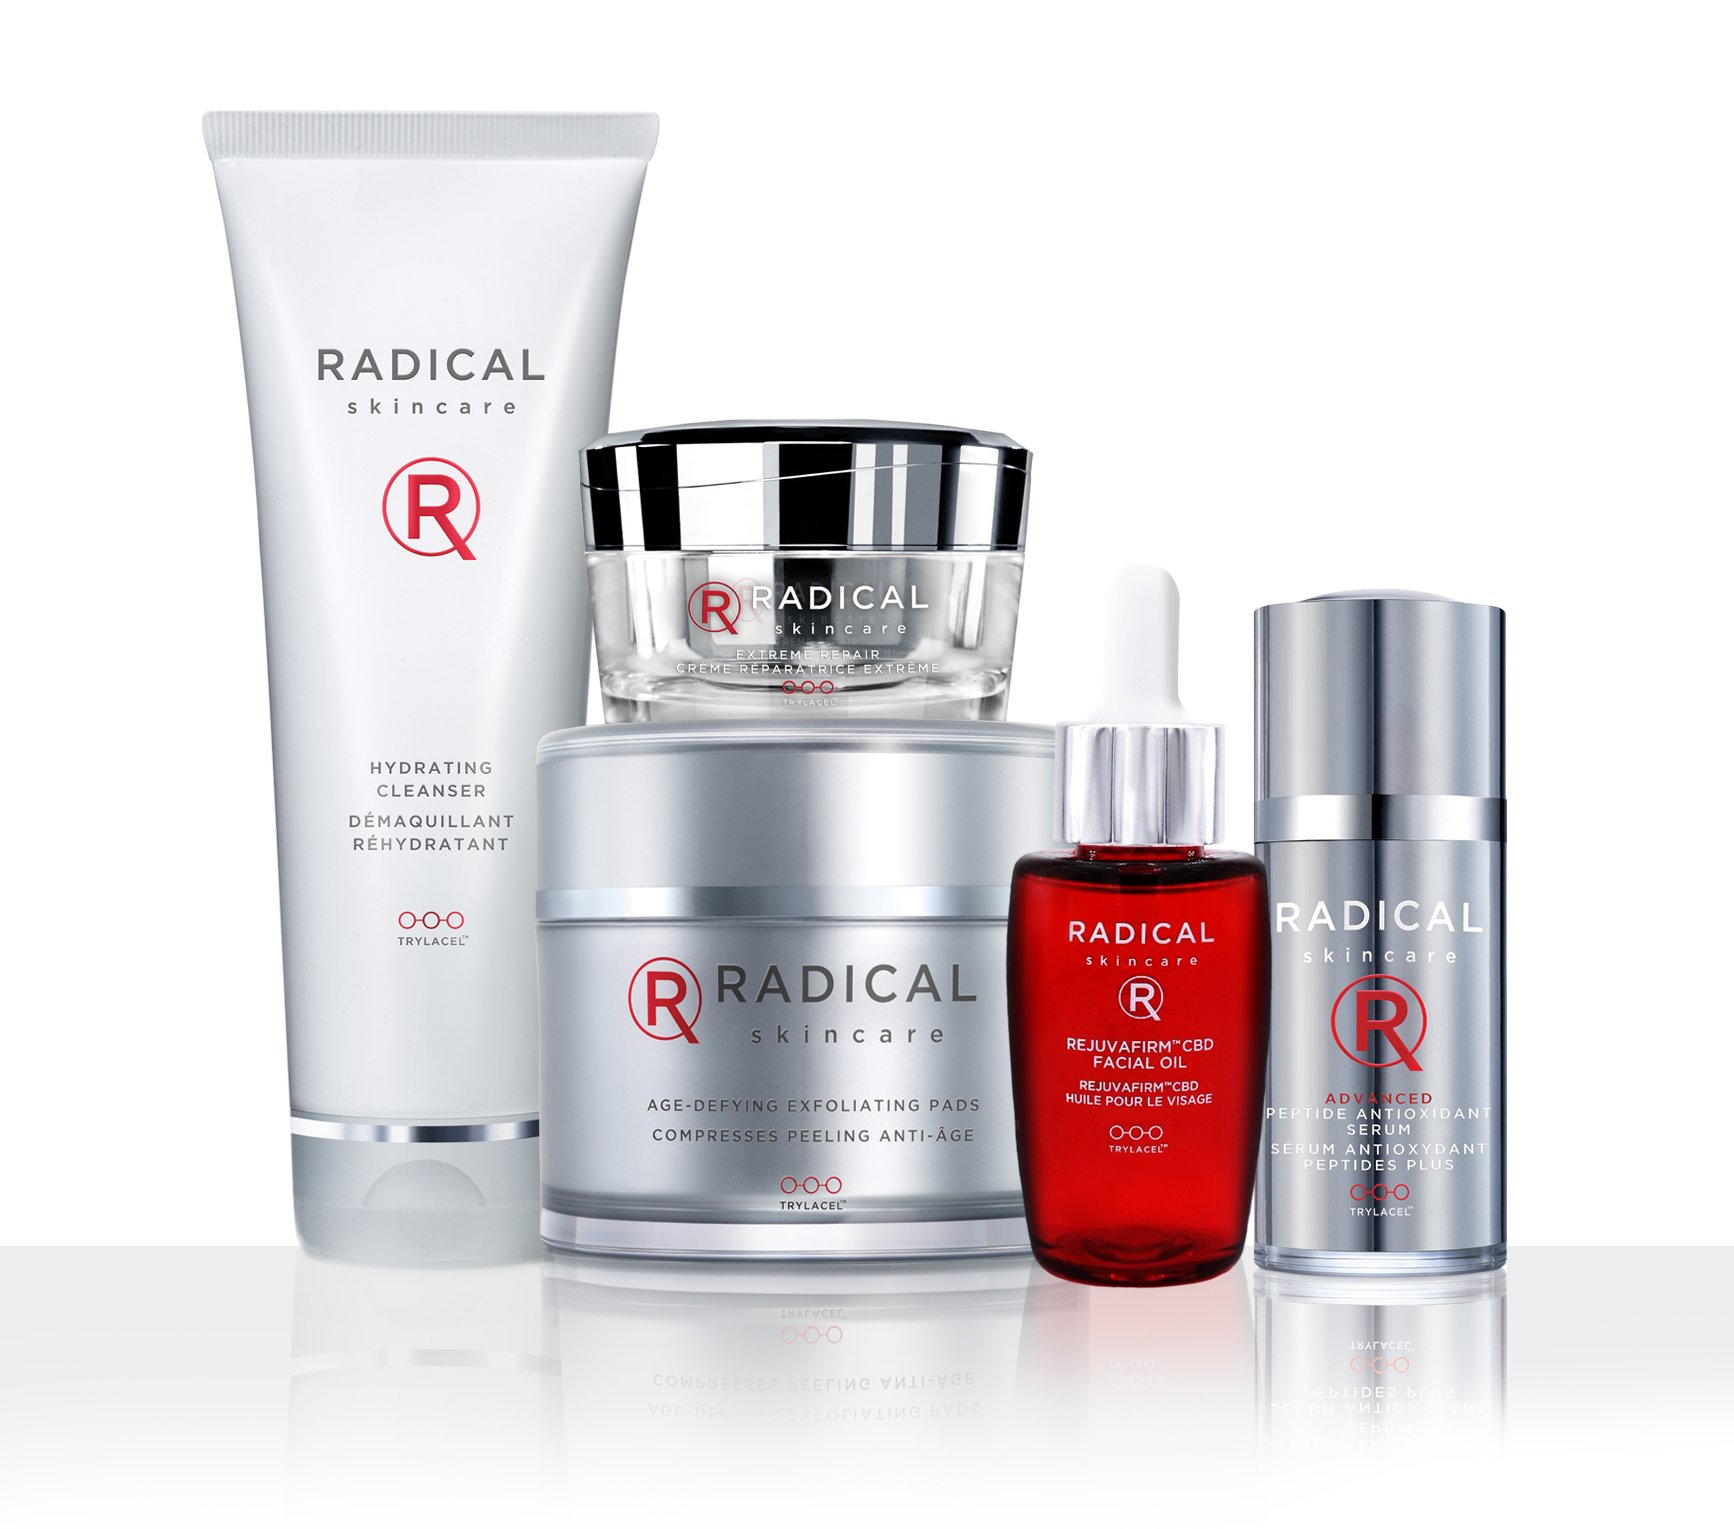 Radical Rescue for Anti-Aging